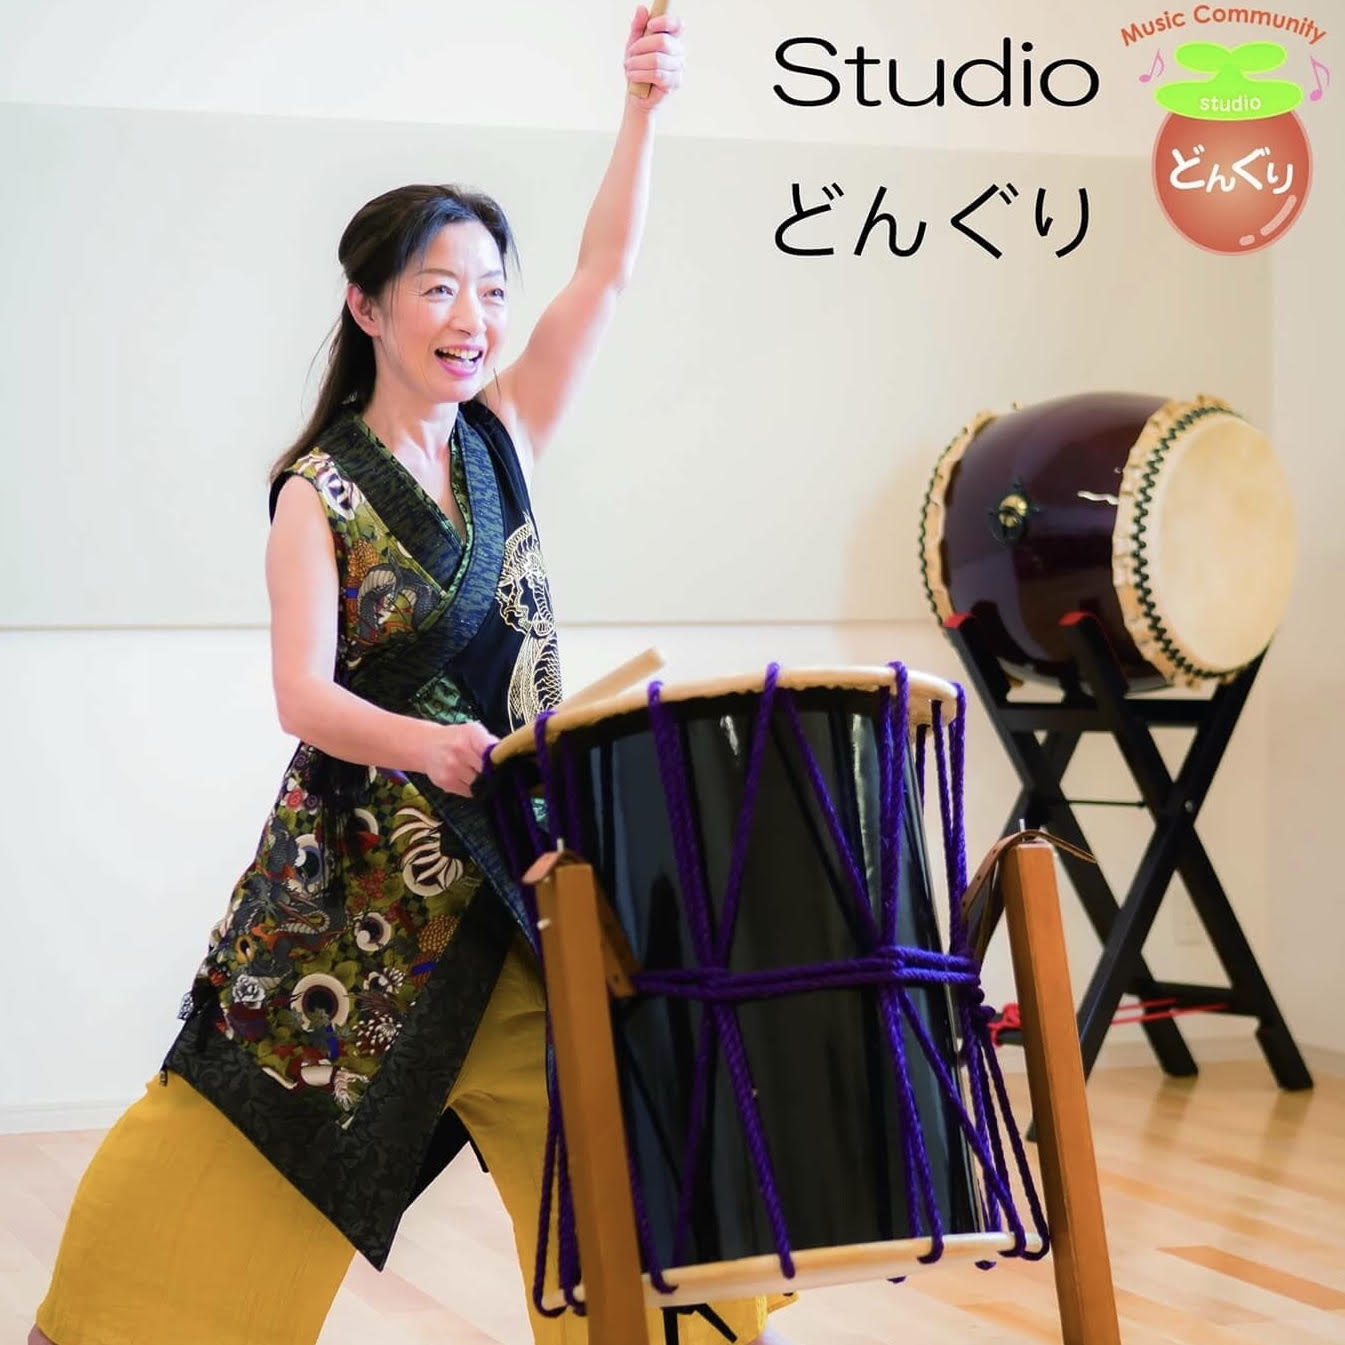 Music Community Studio どんぐり